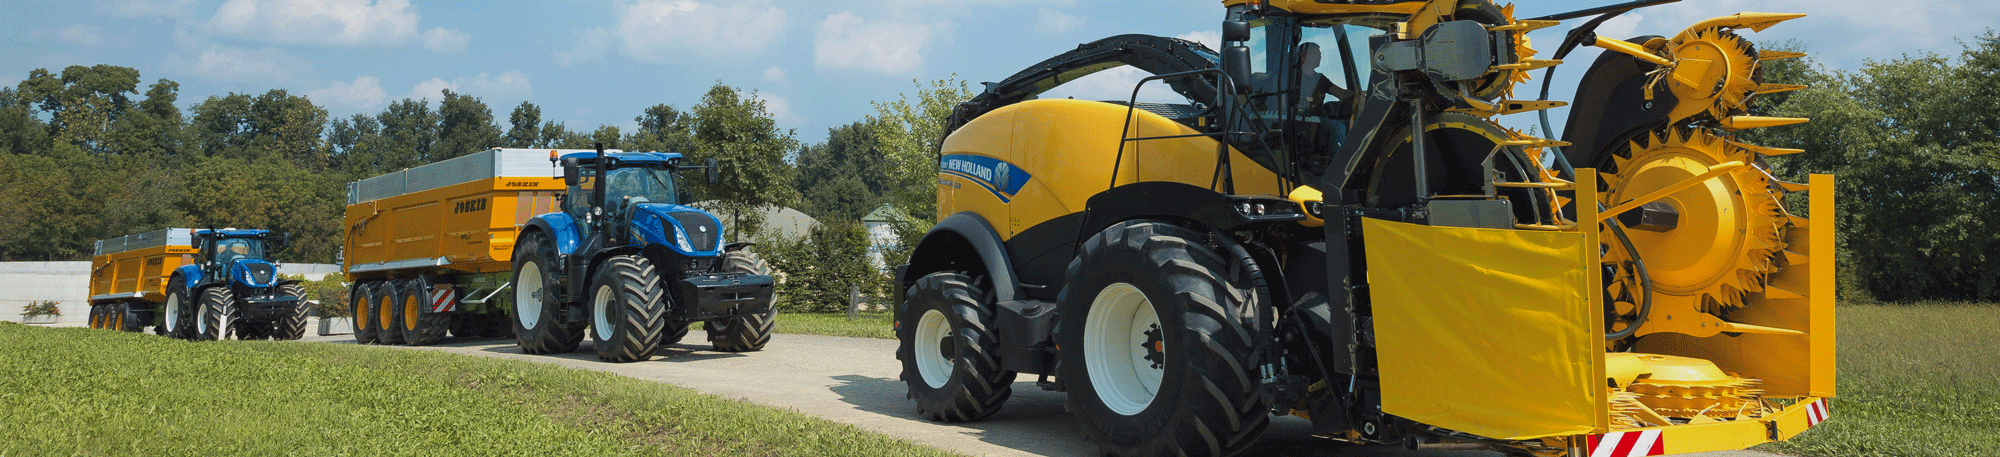 New Holland Agricultura Manto Maquinaria